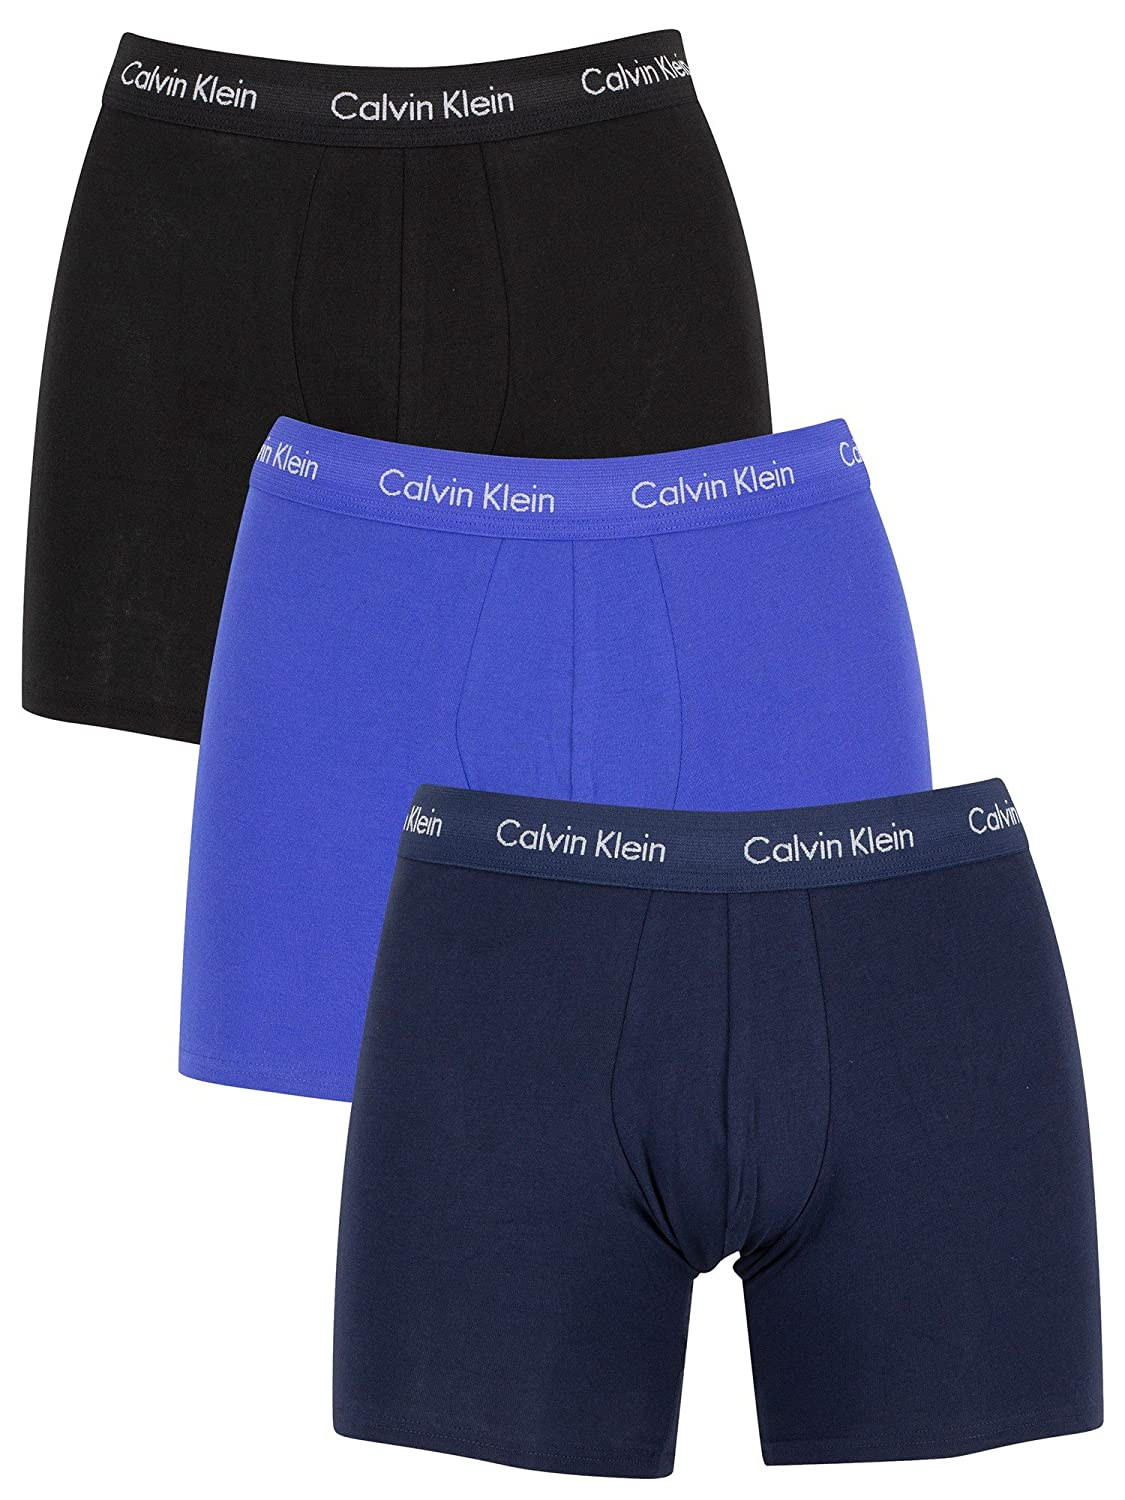 Calvin Klein Men s 3 Pack Cotton Stretch Boxer Briefs 3170aff08